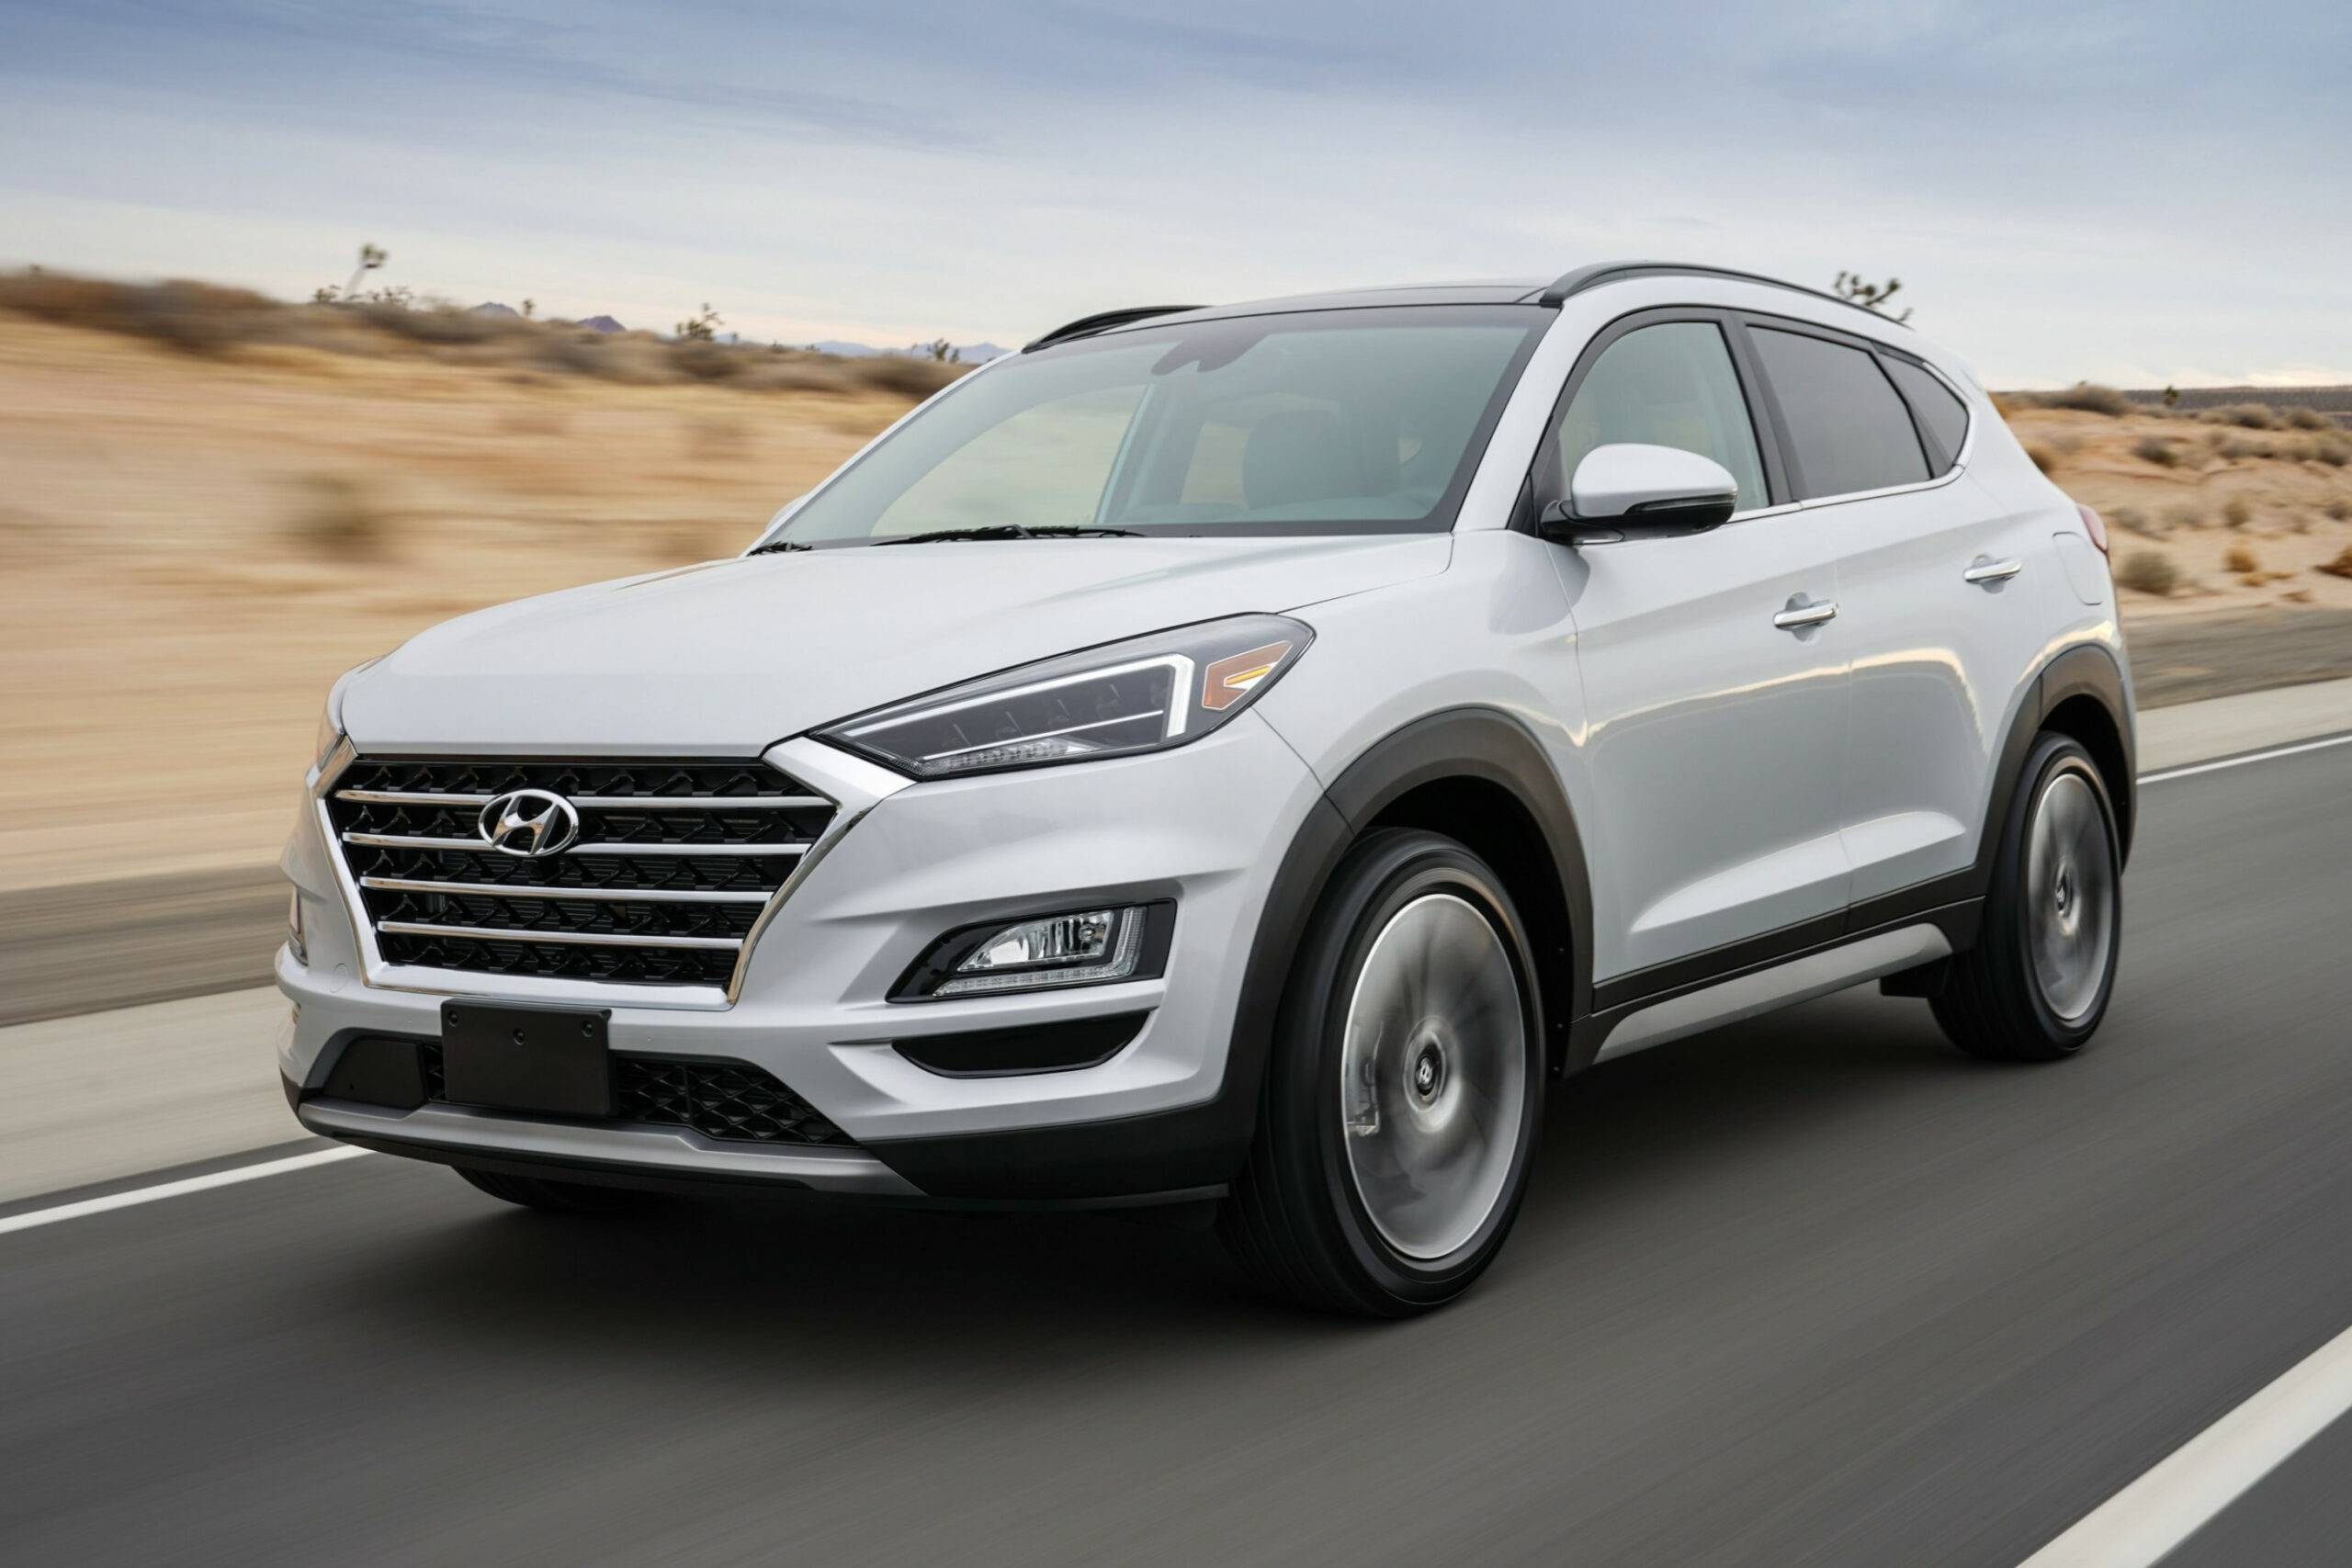 8 Hyundai Tucson Colors, Changes - 8 - 8 SUVs and Trucks - hyundai tucson 2020 colors